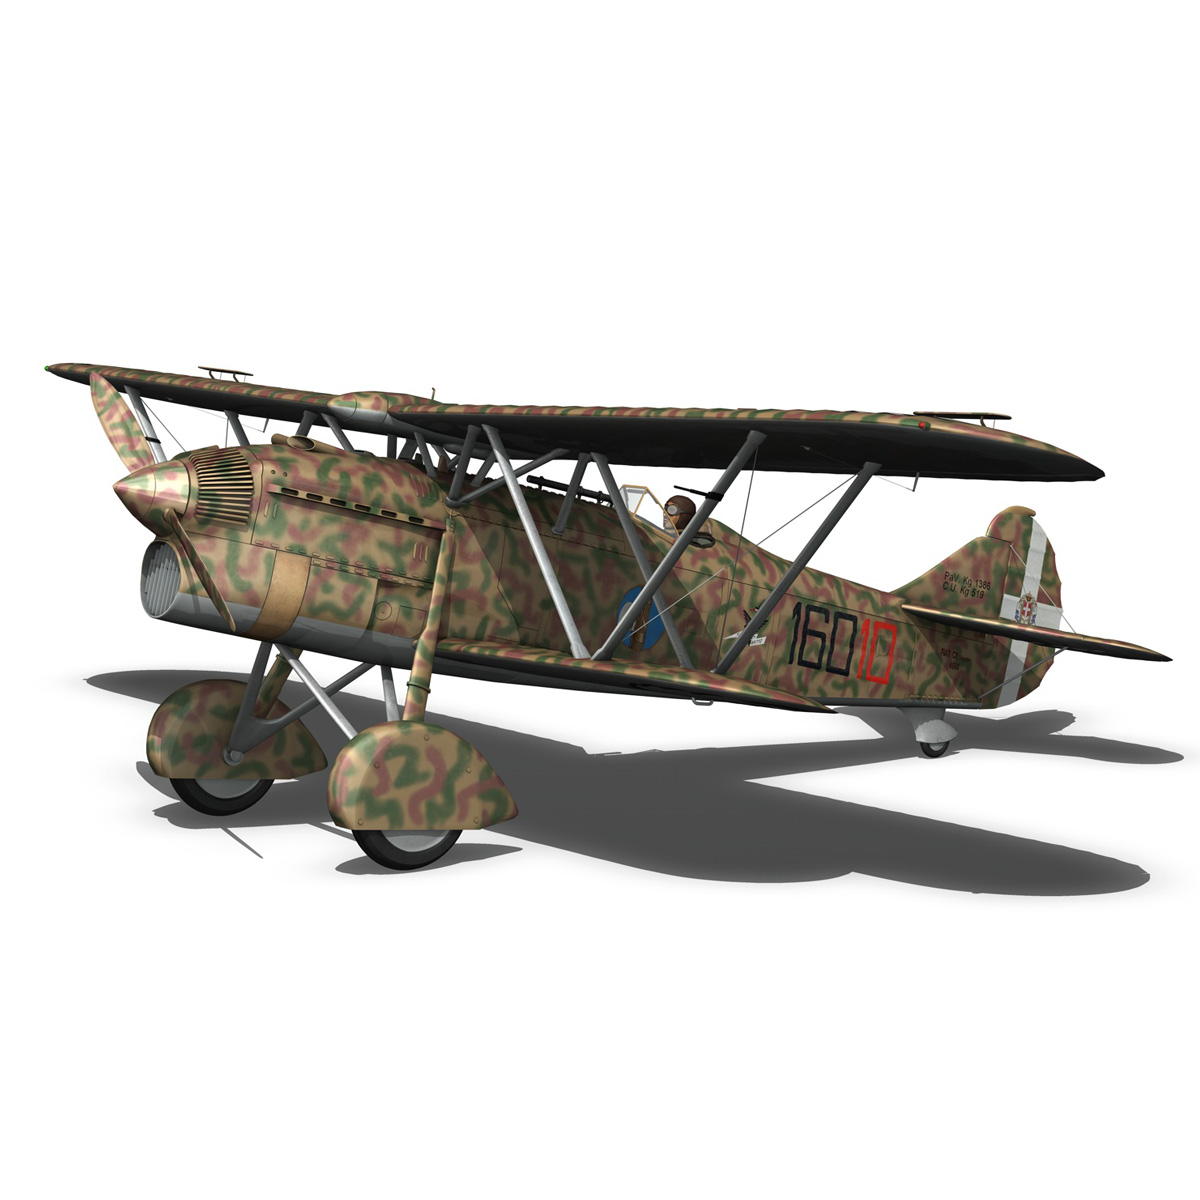 fiat cr.32 – italy airforce – 160 squadriglia 3d model fbx c4d lwo obj 268119